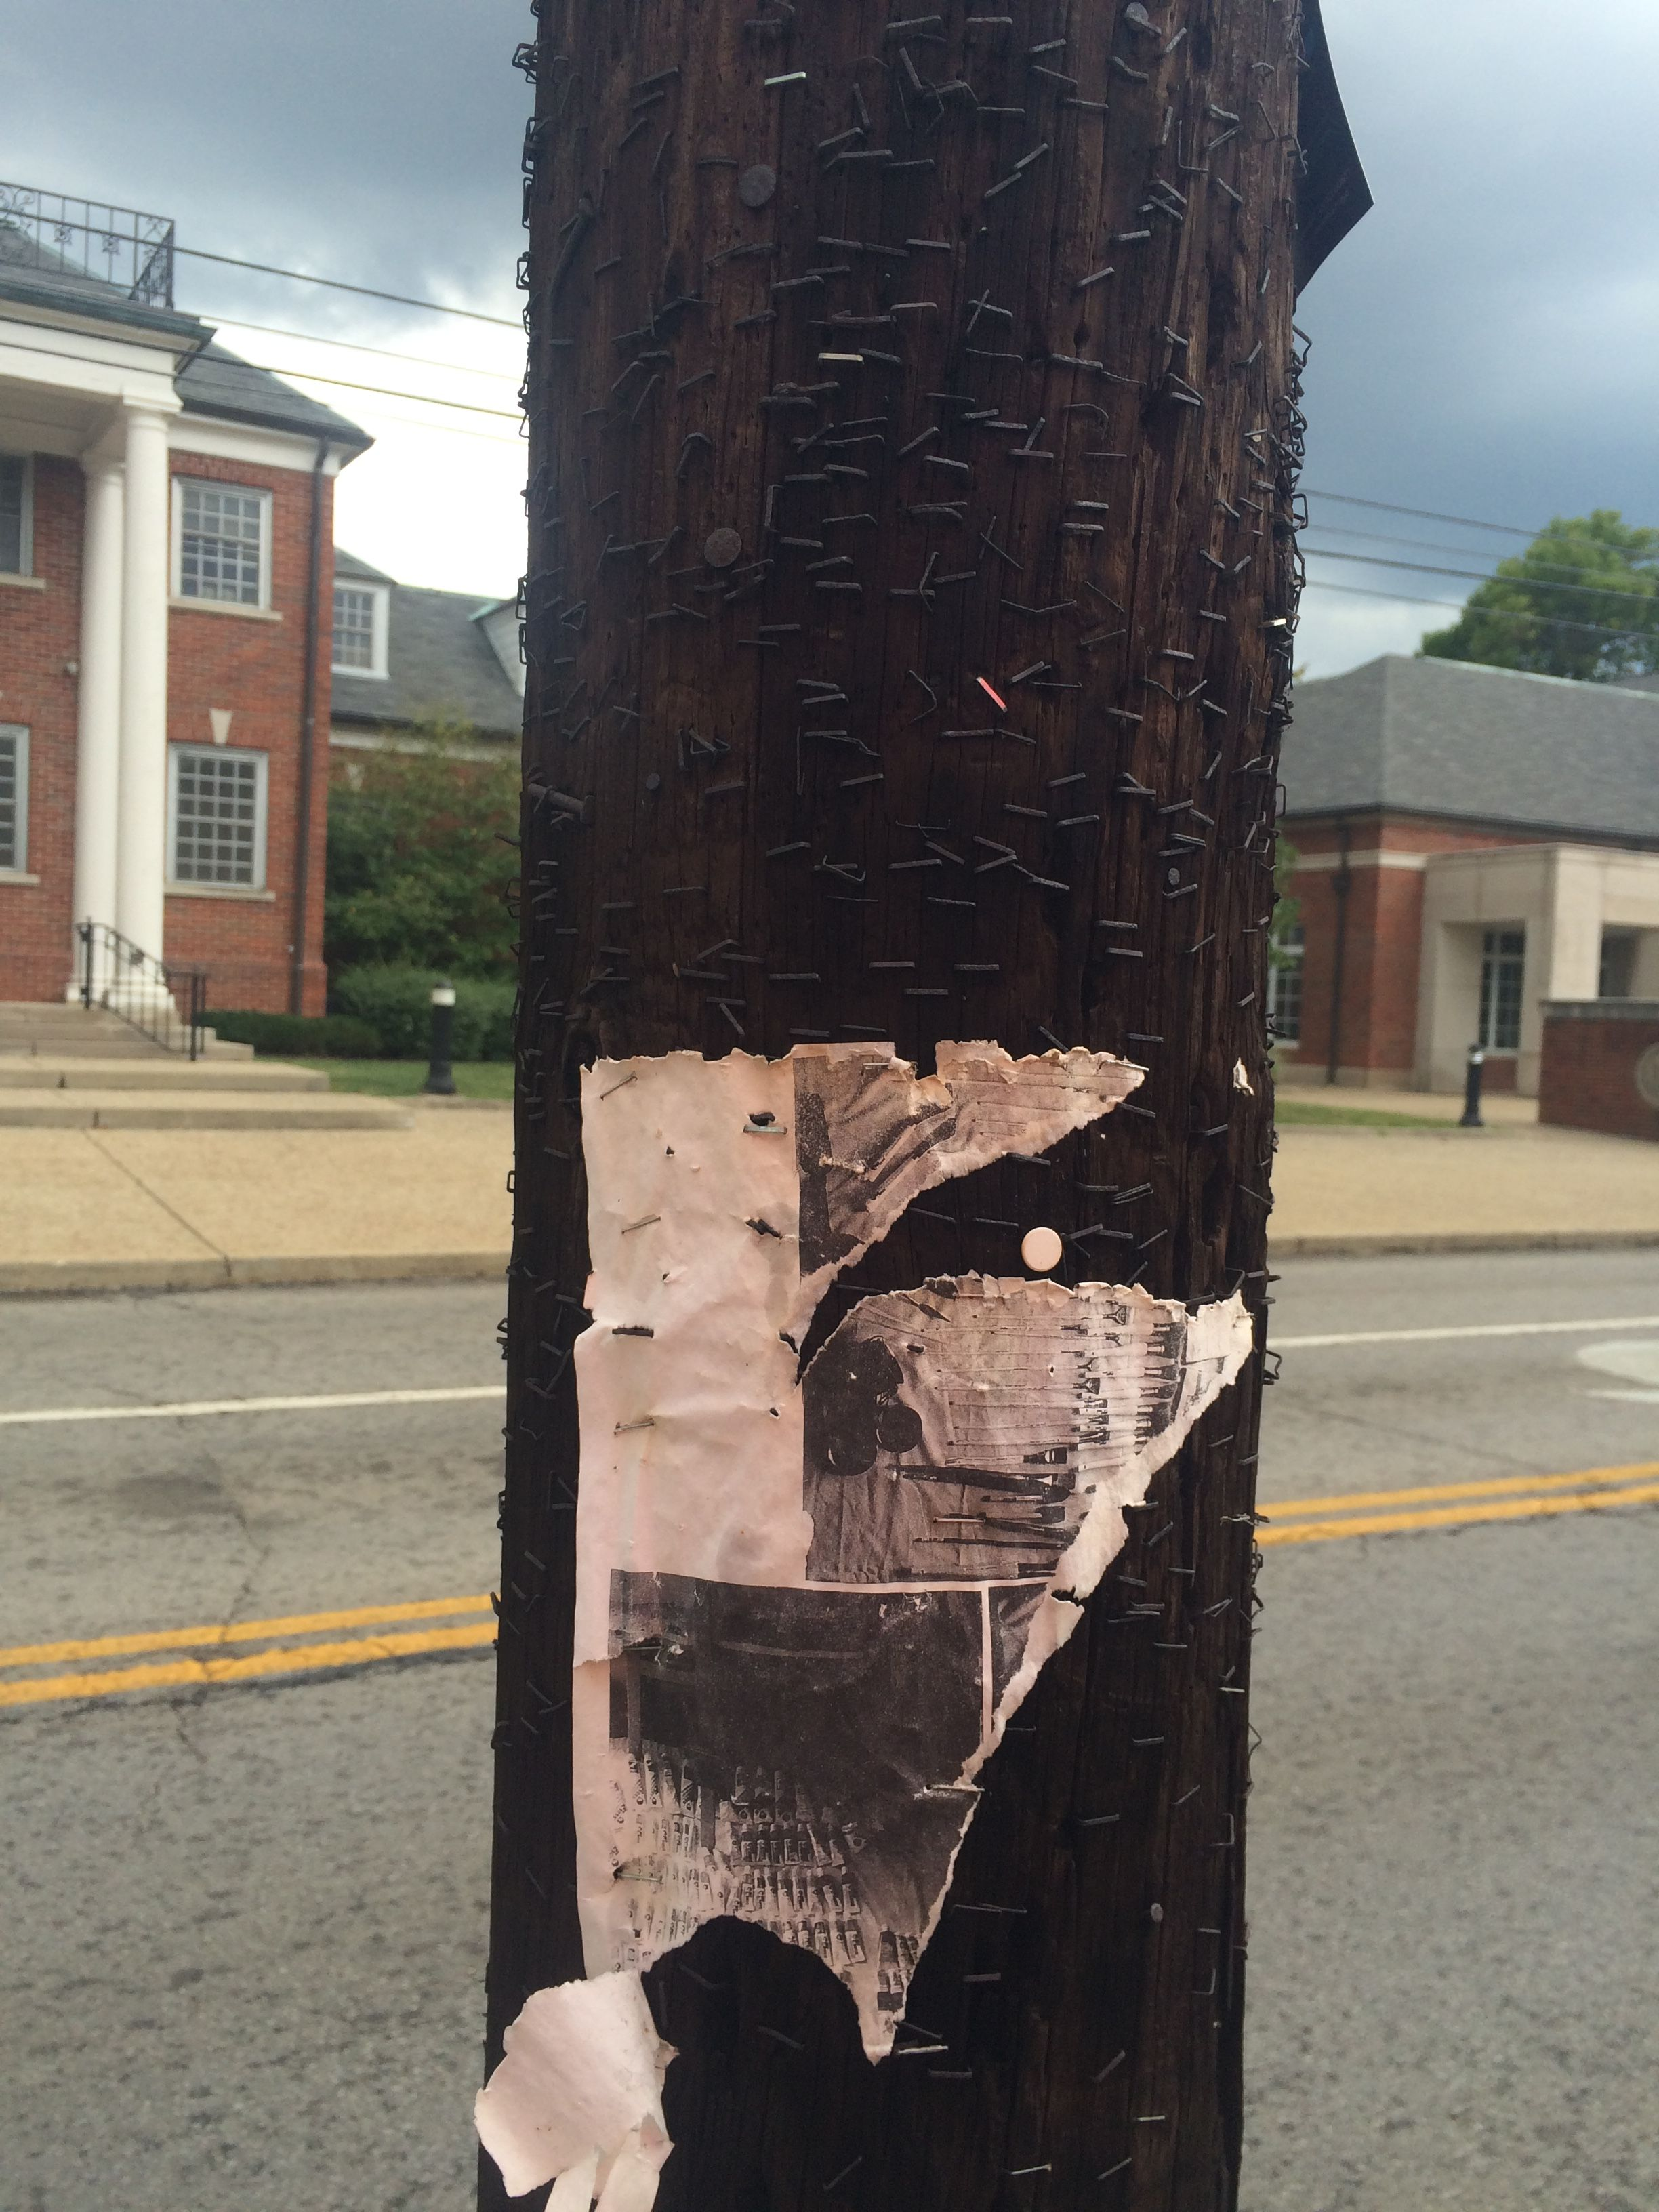 "The walk from Champions Court back to my dorm, Woodland Glen 3, is quite the trek. I just so happened to look at this telephone pole and notice that there were a ton of little nails and staples on it. What has been posted here? Was it people selling things or looking for lost items? What ""community"" has left their mark here?"